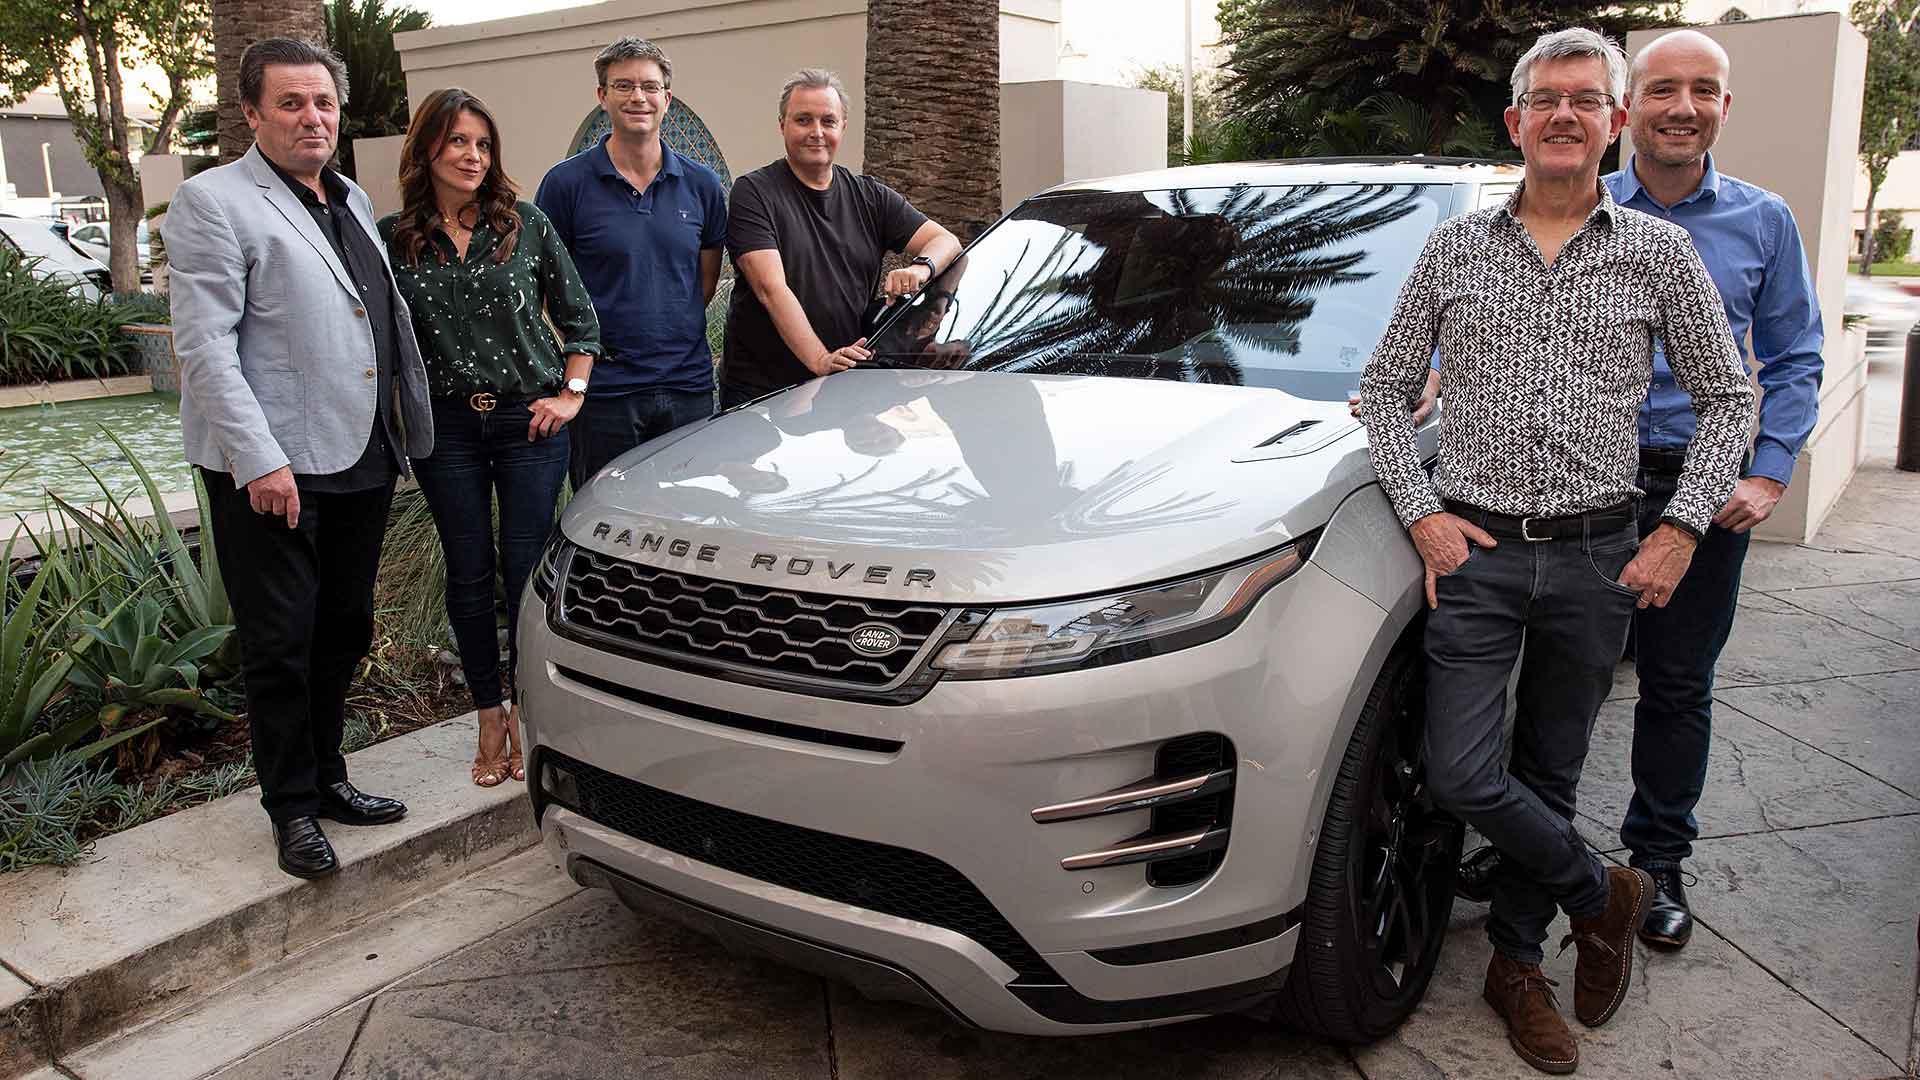 World Car Awards 2020 – Range Rover Evoque